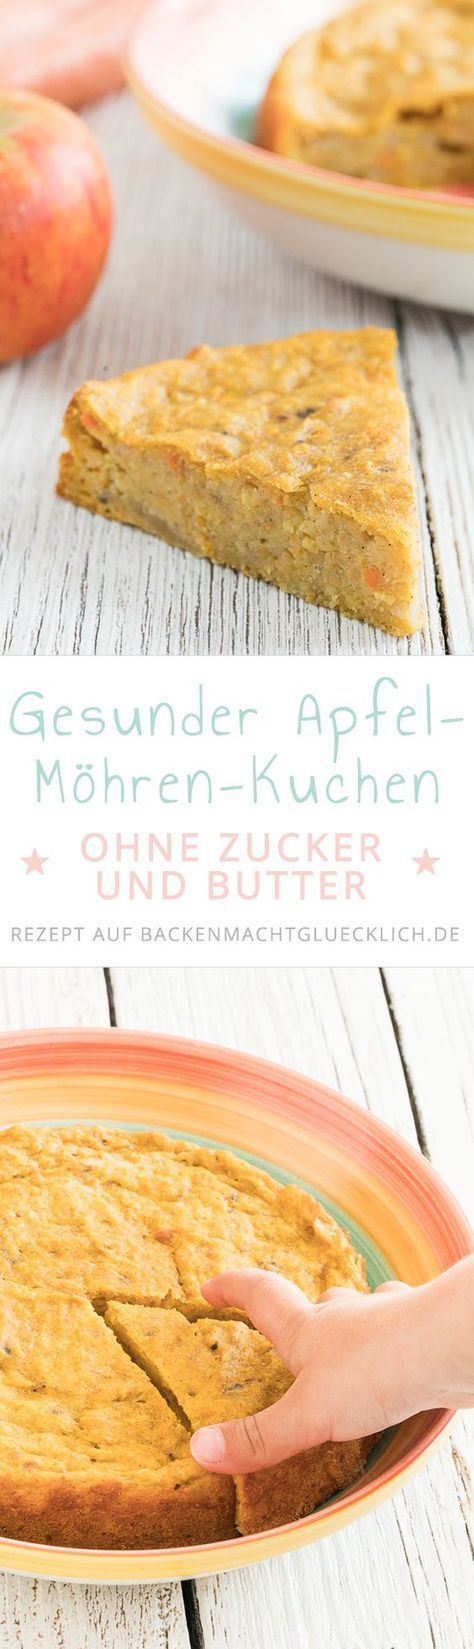 apfel m hren kuchen ohne zucker rezept rec healthy. Black Bedroom Furniture Sets. Home Design Ideas